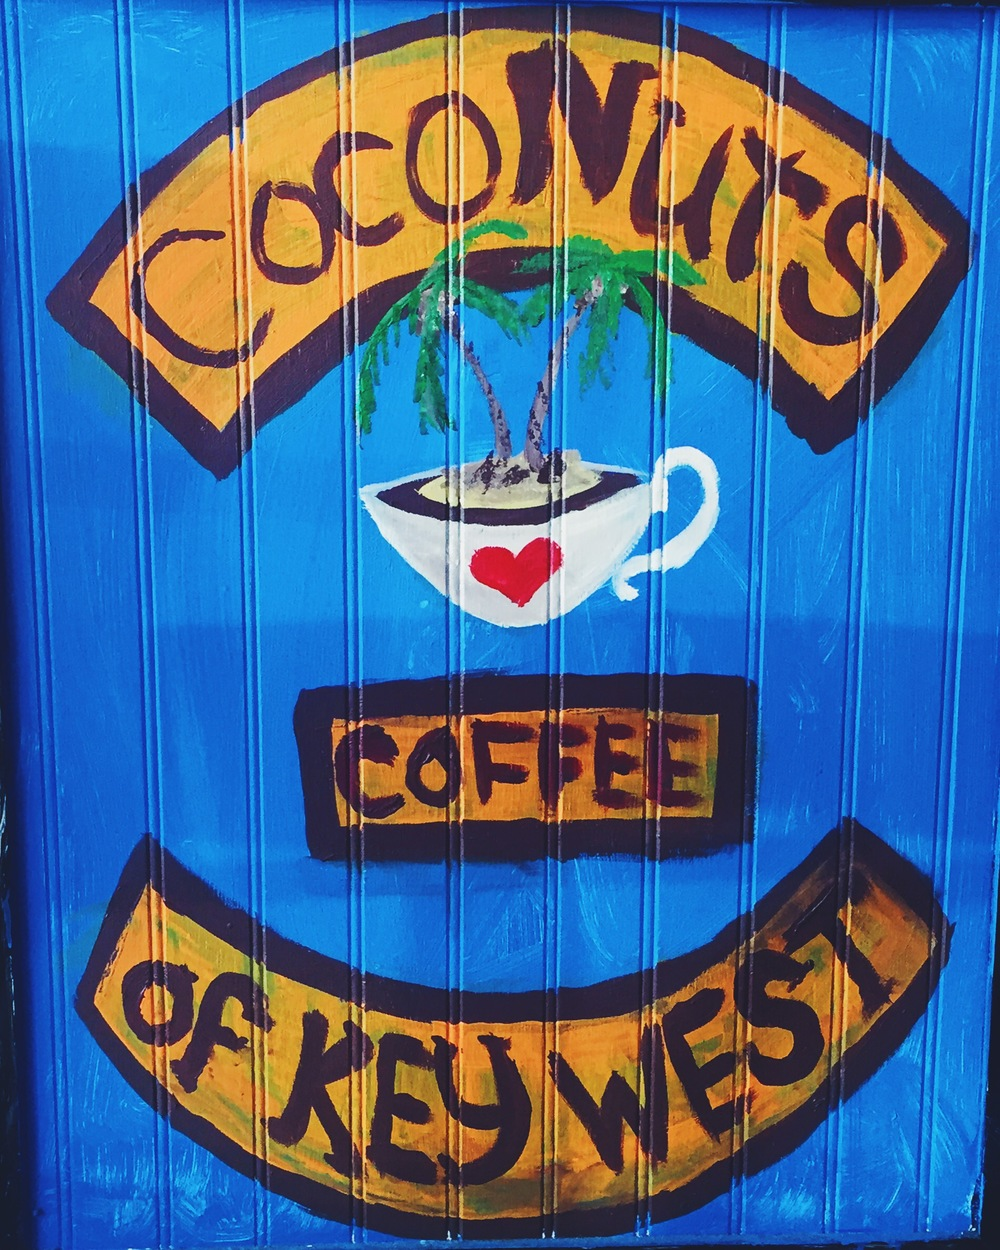 Coffee Culture: An Artistic Experiment. Writing, creativity, coffee and Key West.